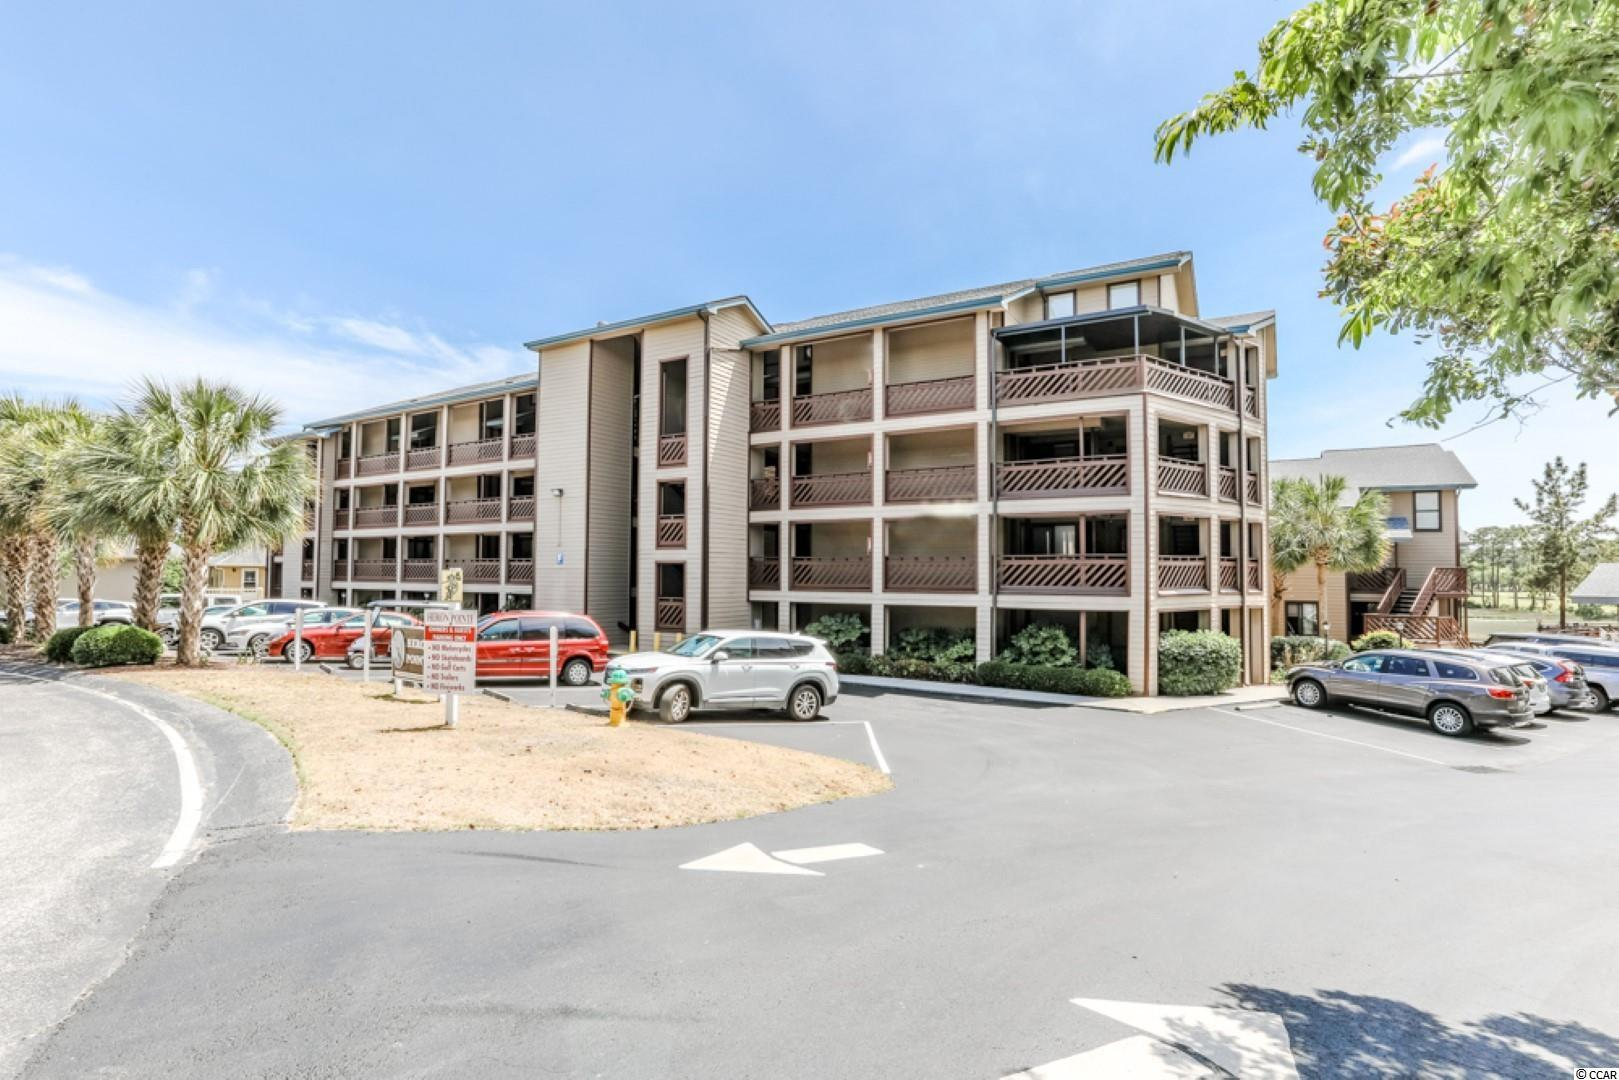 This beautifully decorated and appointed Heron Pointe 2 BR and 2 BA villa is being sold fully furnished.  One of its greatest features of unit F-1 is that it is located on the second floor and it is in the only Heron Pointe building with an elevator.  Unlike most condominiums at the beach, this spacious Heron Pointe floor plan provides over 1200 heated square feet of space, more than enough square footage where you and your guests will actually enjoy some privacy during your vacation stay.  Heron Pointe F-1 also features large screened in porches.  One is located at the front entrance and the other is accessed from both the living room and the master bedroom and faces the inlet and marsh.  The beautifully landscaped Heron Pointe community features an outdoor swimming pool and a heated indoor swimming pool for anyone's enjoyment when they do not wish to go down to the ocean.  The heated indoor pool is a particularly favorite amenity to our northern guests who prefer living at Heron Pointe during the winter months.  This amenity alone has made Heron Pointe a preferred off season destination.  Heron Pointe is located in the very popular Arcadian Section of Myrtle Beach.  The Arcadian Section has remained a favorite resort location because of its pristine beaches and central location to area amenities.  From Heron Pointe your are a very short drive to all kinds of restaurants, challenging golf, shopping at malls and outlet centers, and incredible family entertainment like the Carolina Opry and the Alabama Theatre. Please call and make an appointment to view this incredible property. Square footage is approximate and not guaranteed. Buyers responsible for verification.